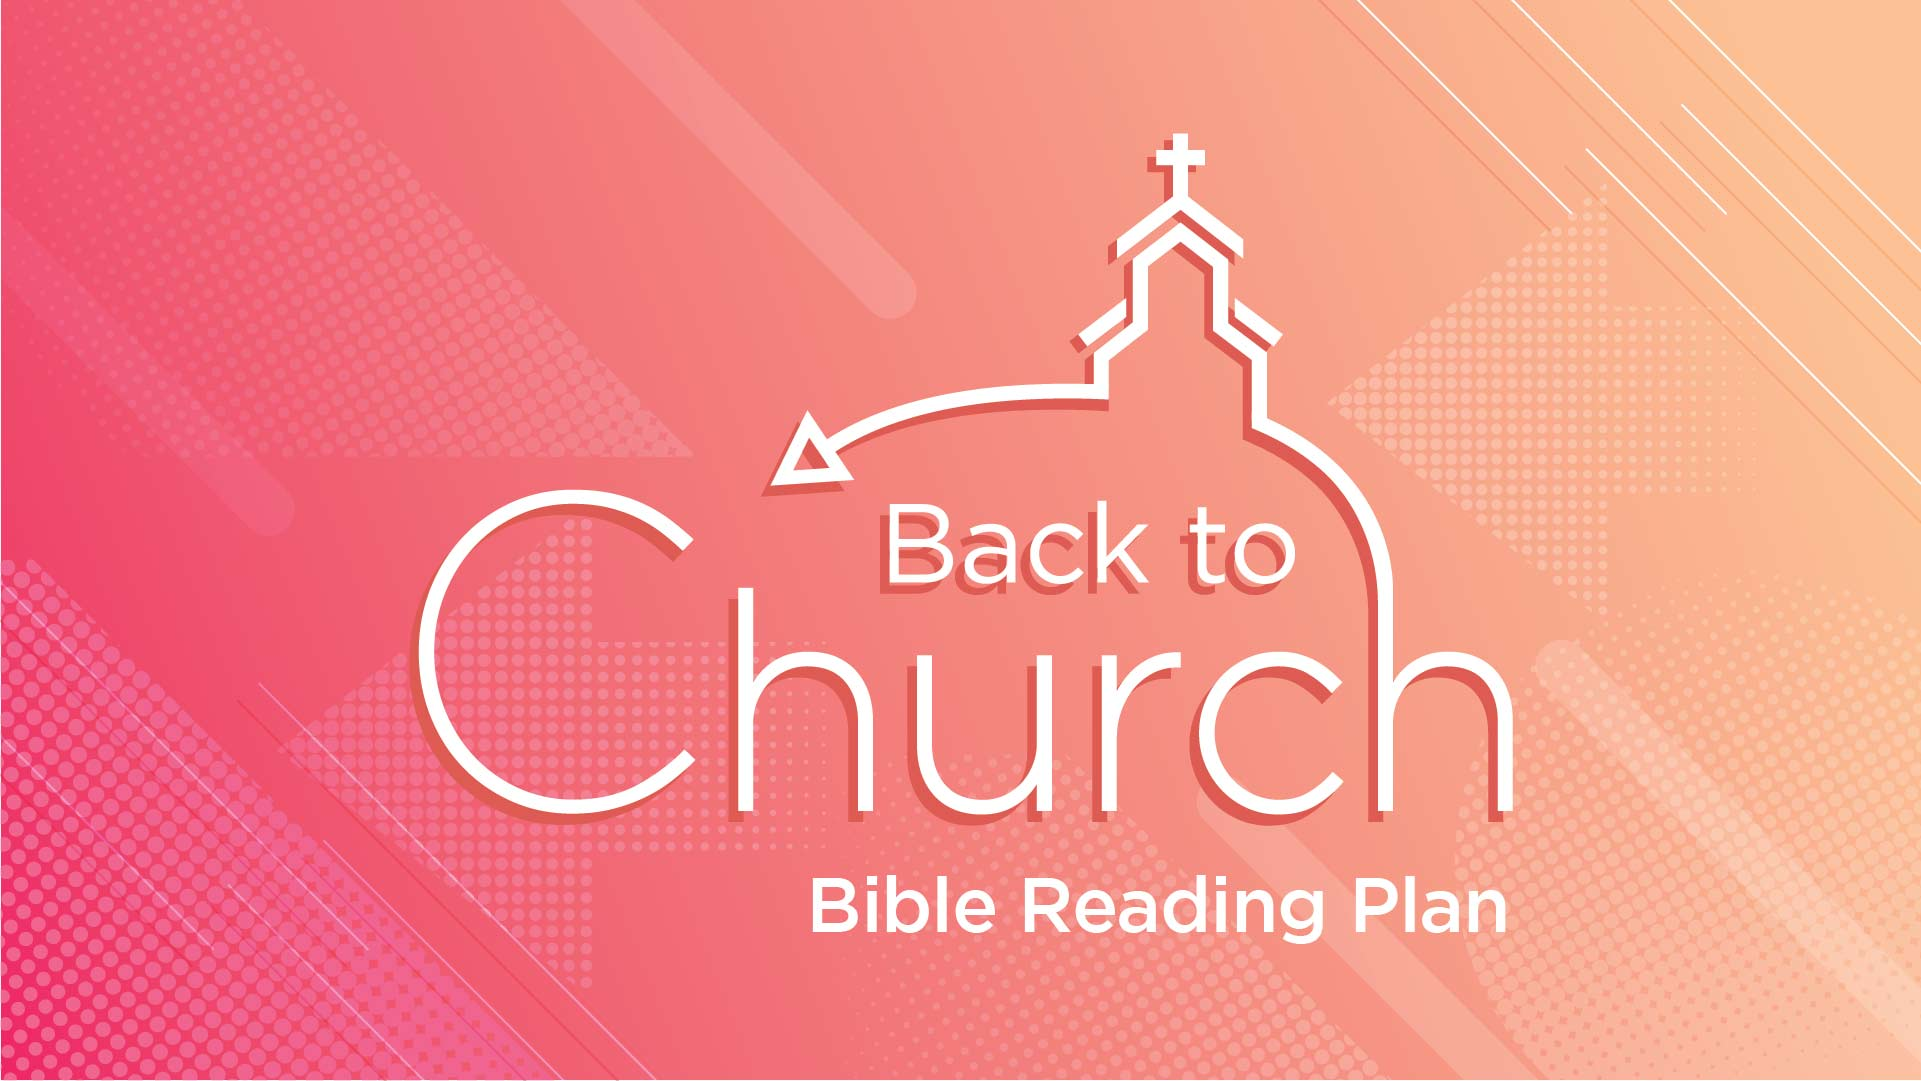 BacktoChurch BibleReadingPlan Web